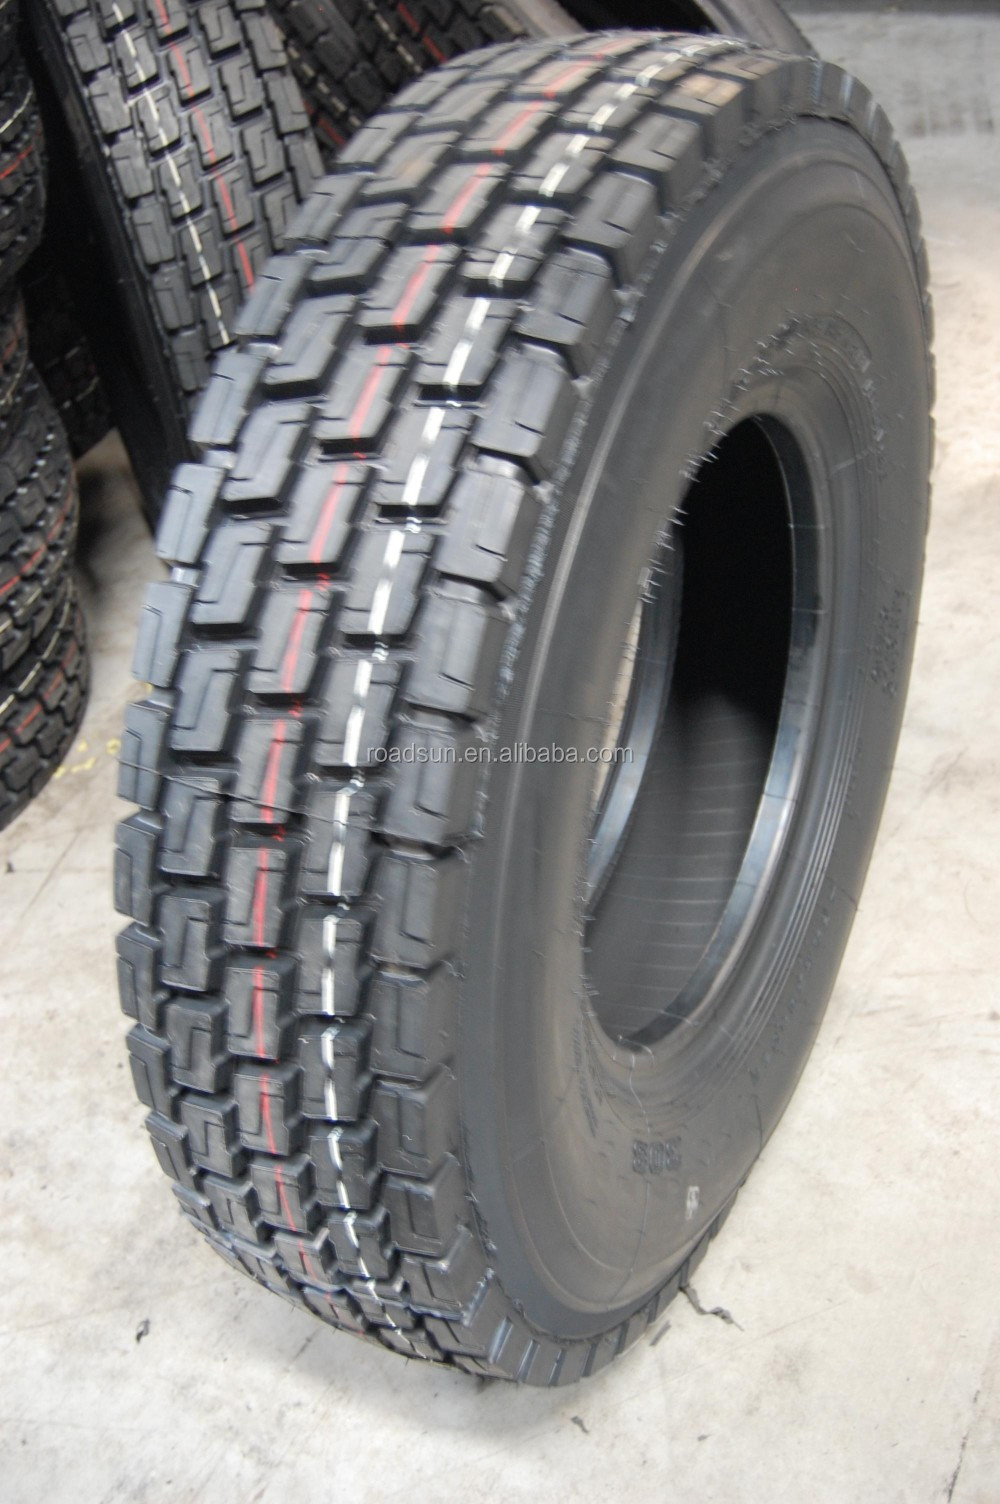 19 5 tires for sale supplying 245  70 265  70 285  70r19 5 tires with reach e u0026s mark gcc nom etc